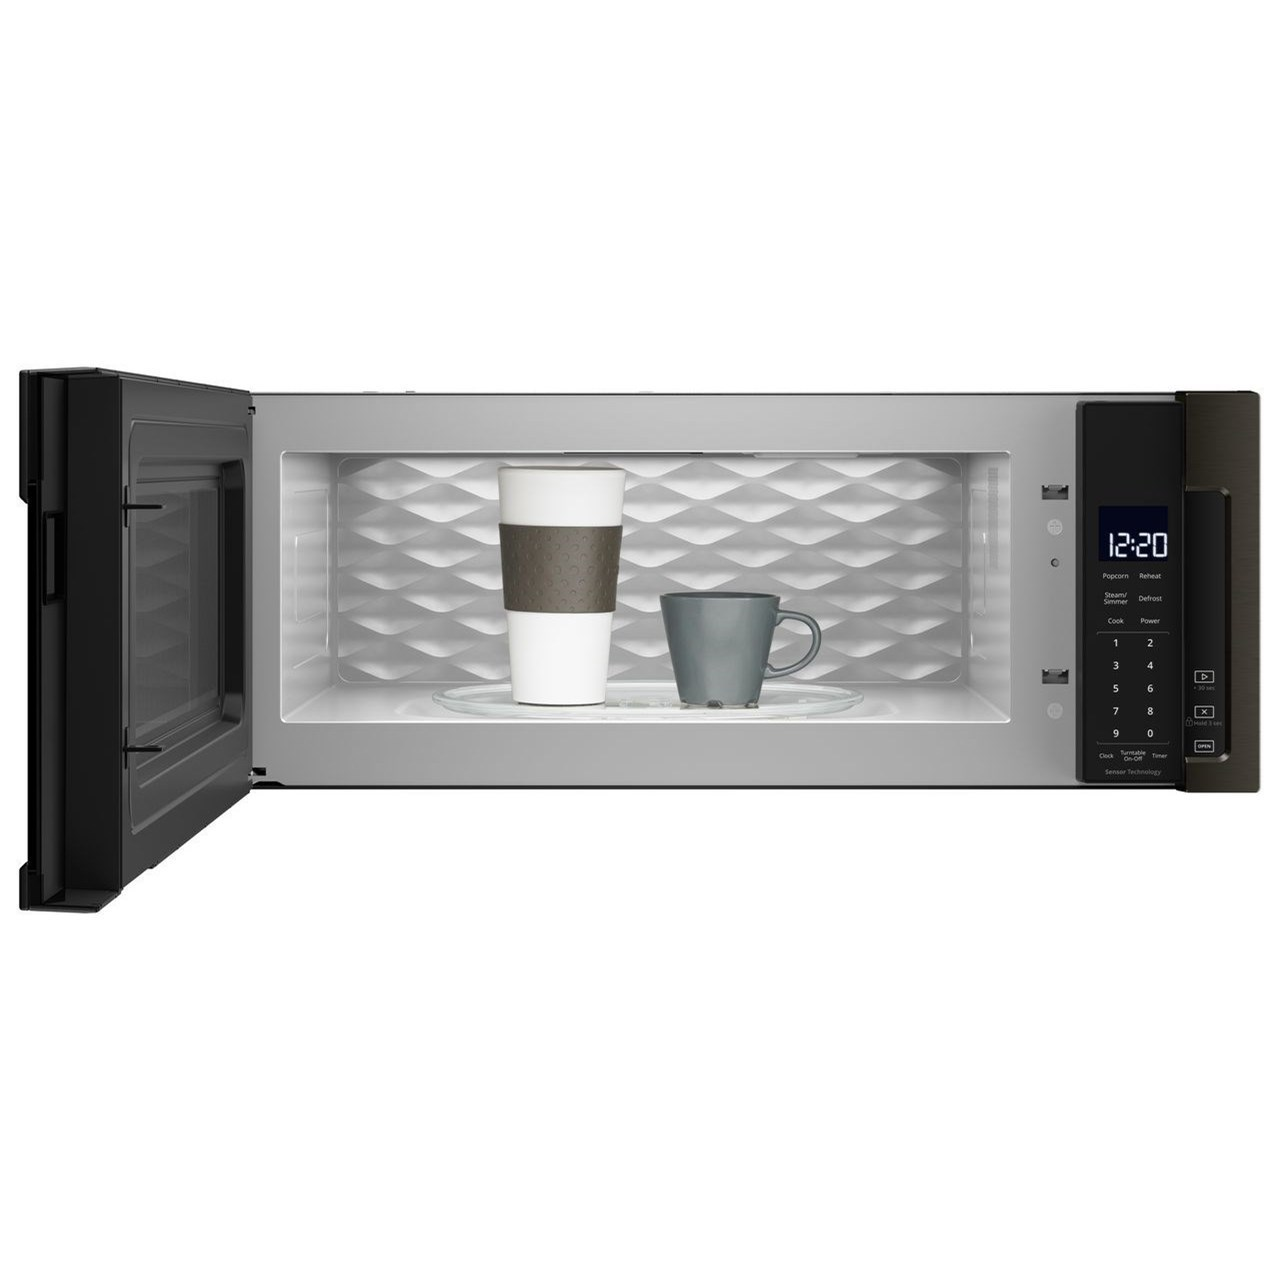 microwaves whirlpool 1 1 cu ft low profile microwave hood combination by whirlpool at furniture and appliancemart